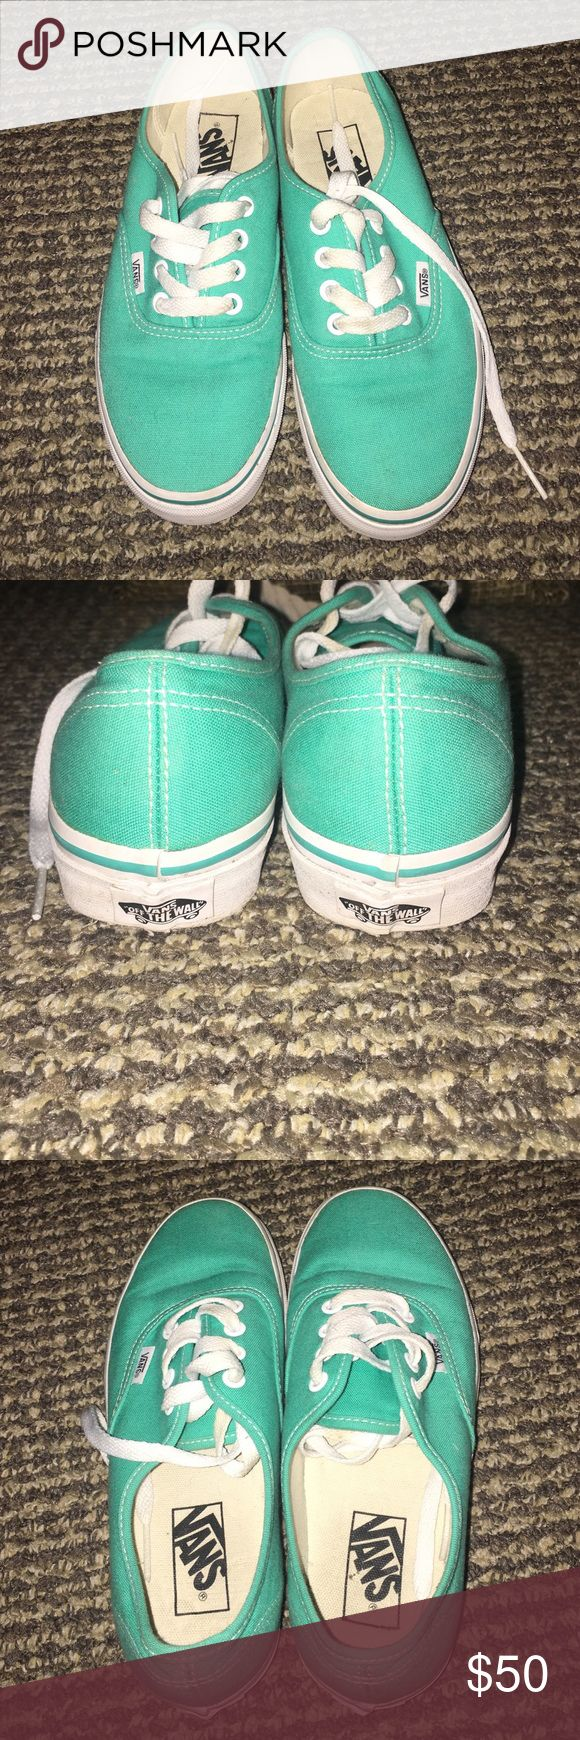 Teal Vans Almost Perfect condition. Very rarely worn. Vans Shoes Sneakers